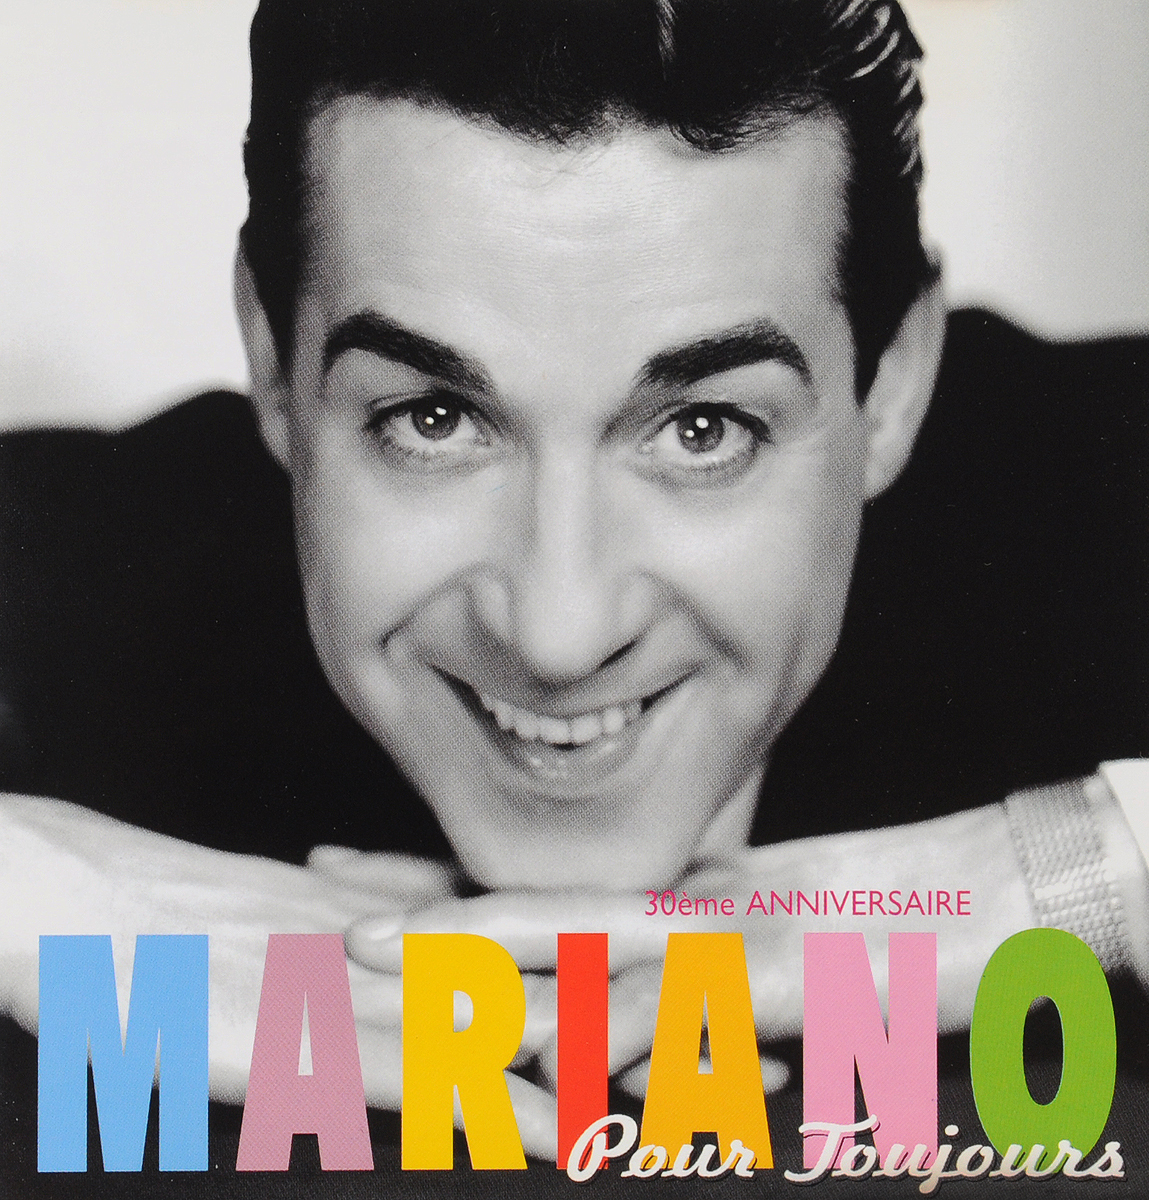 Luis Mariano. Les Tresors De Luis Mariano - 30th Anniversary цены онлайн